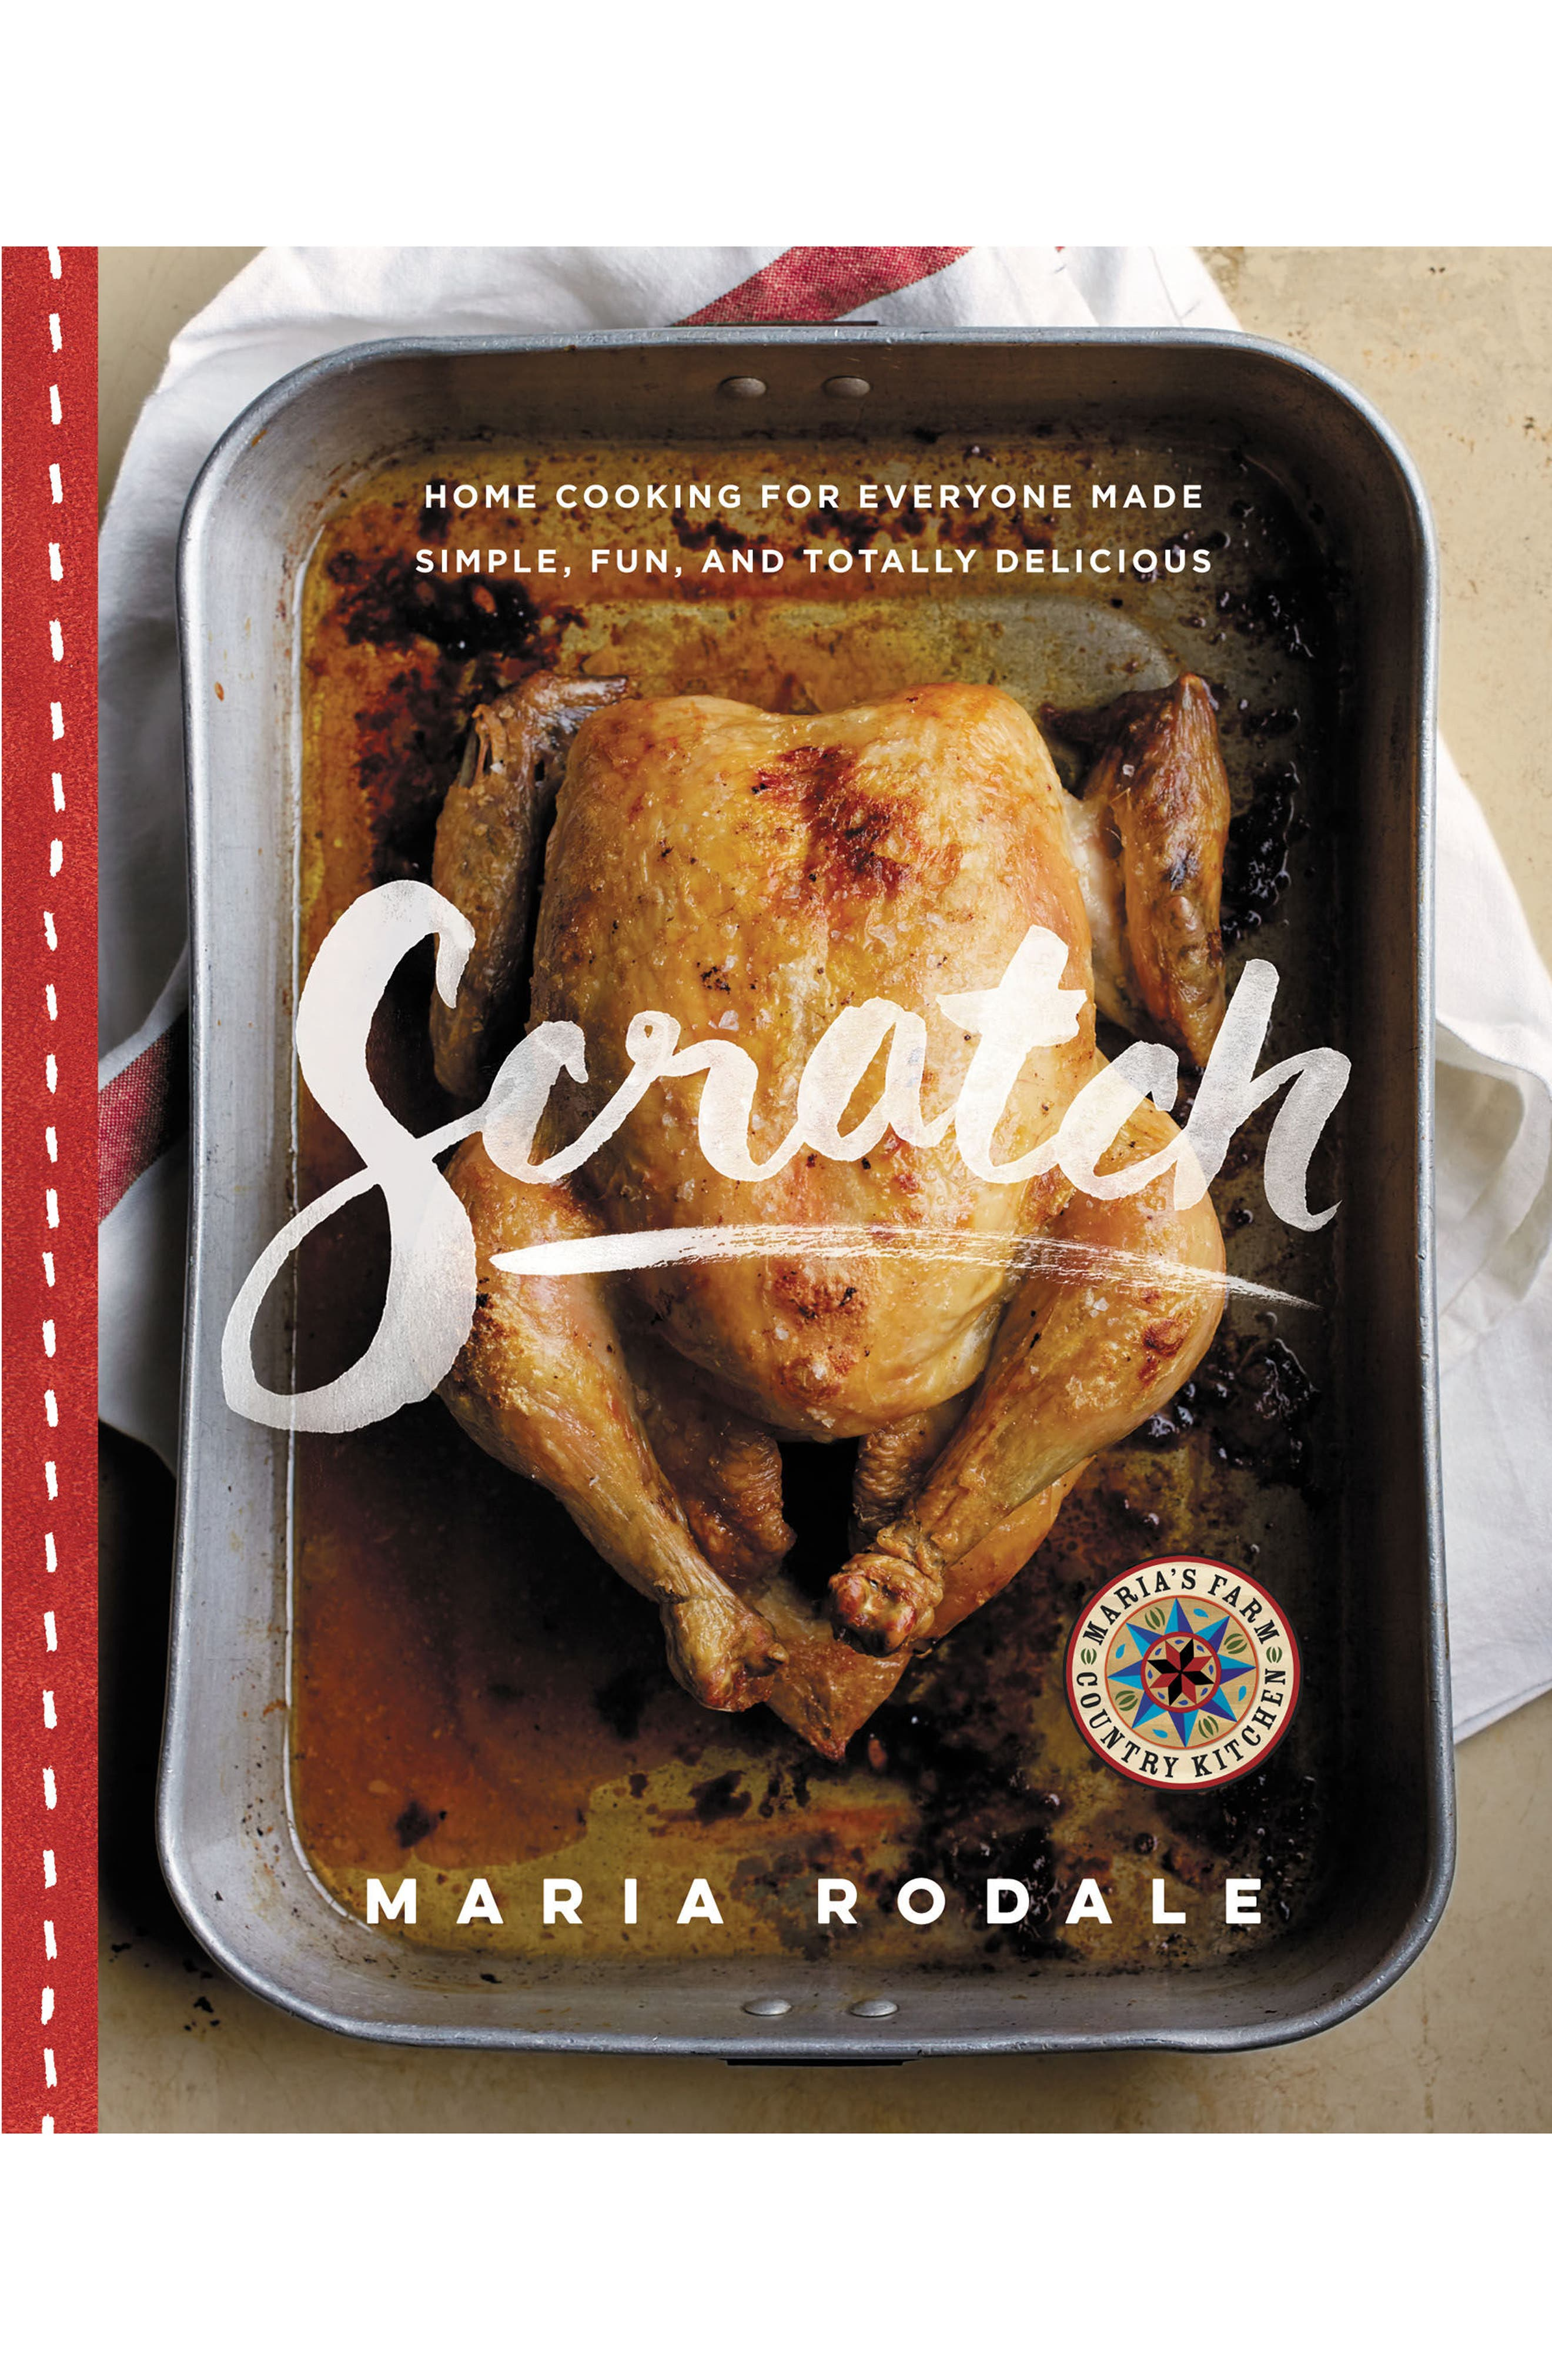 Scratch: Home Cooking for Everyone Made Simple, Fun, and Totally Delicious Cookbook